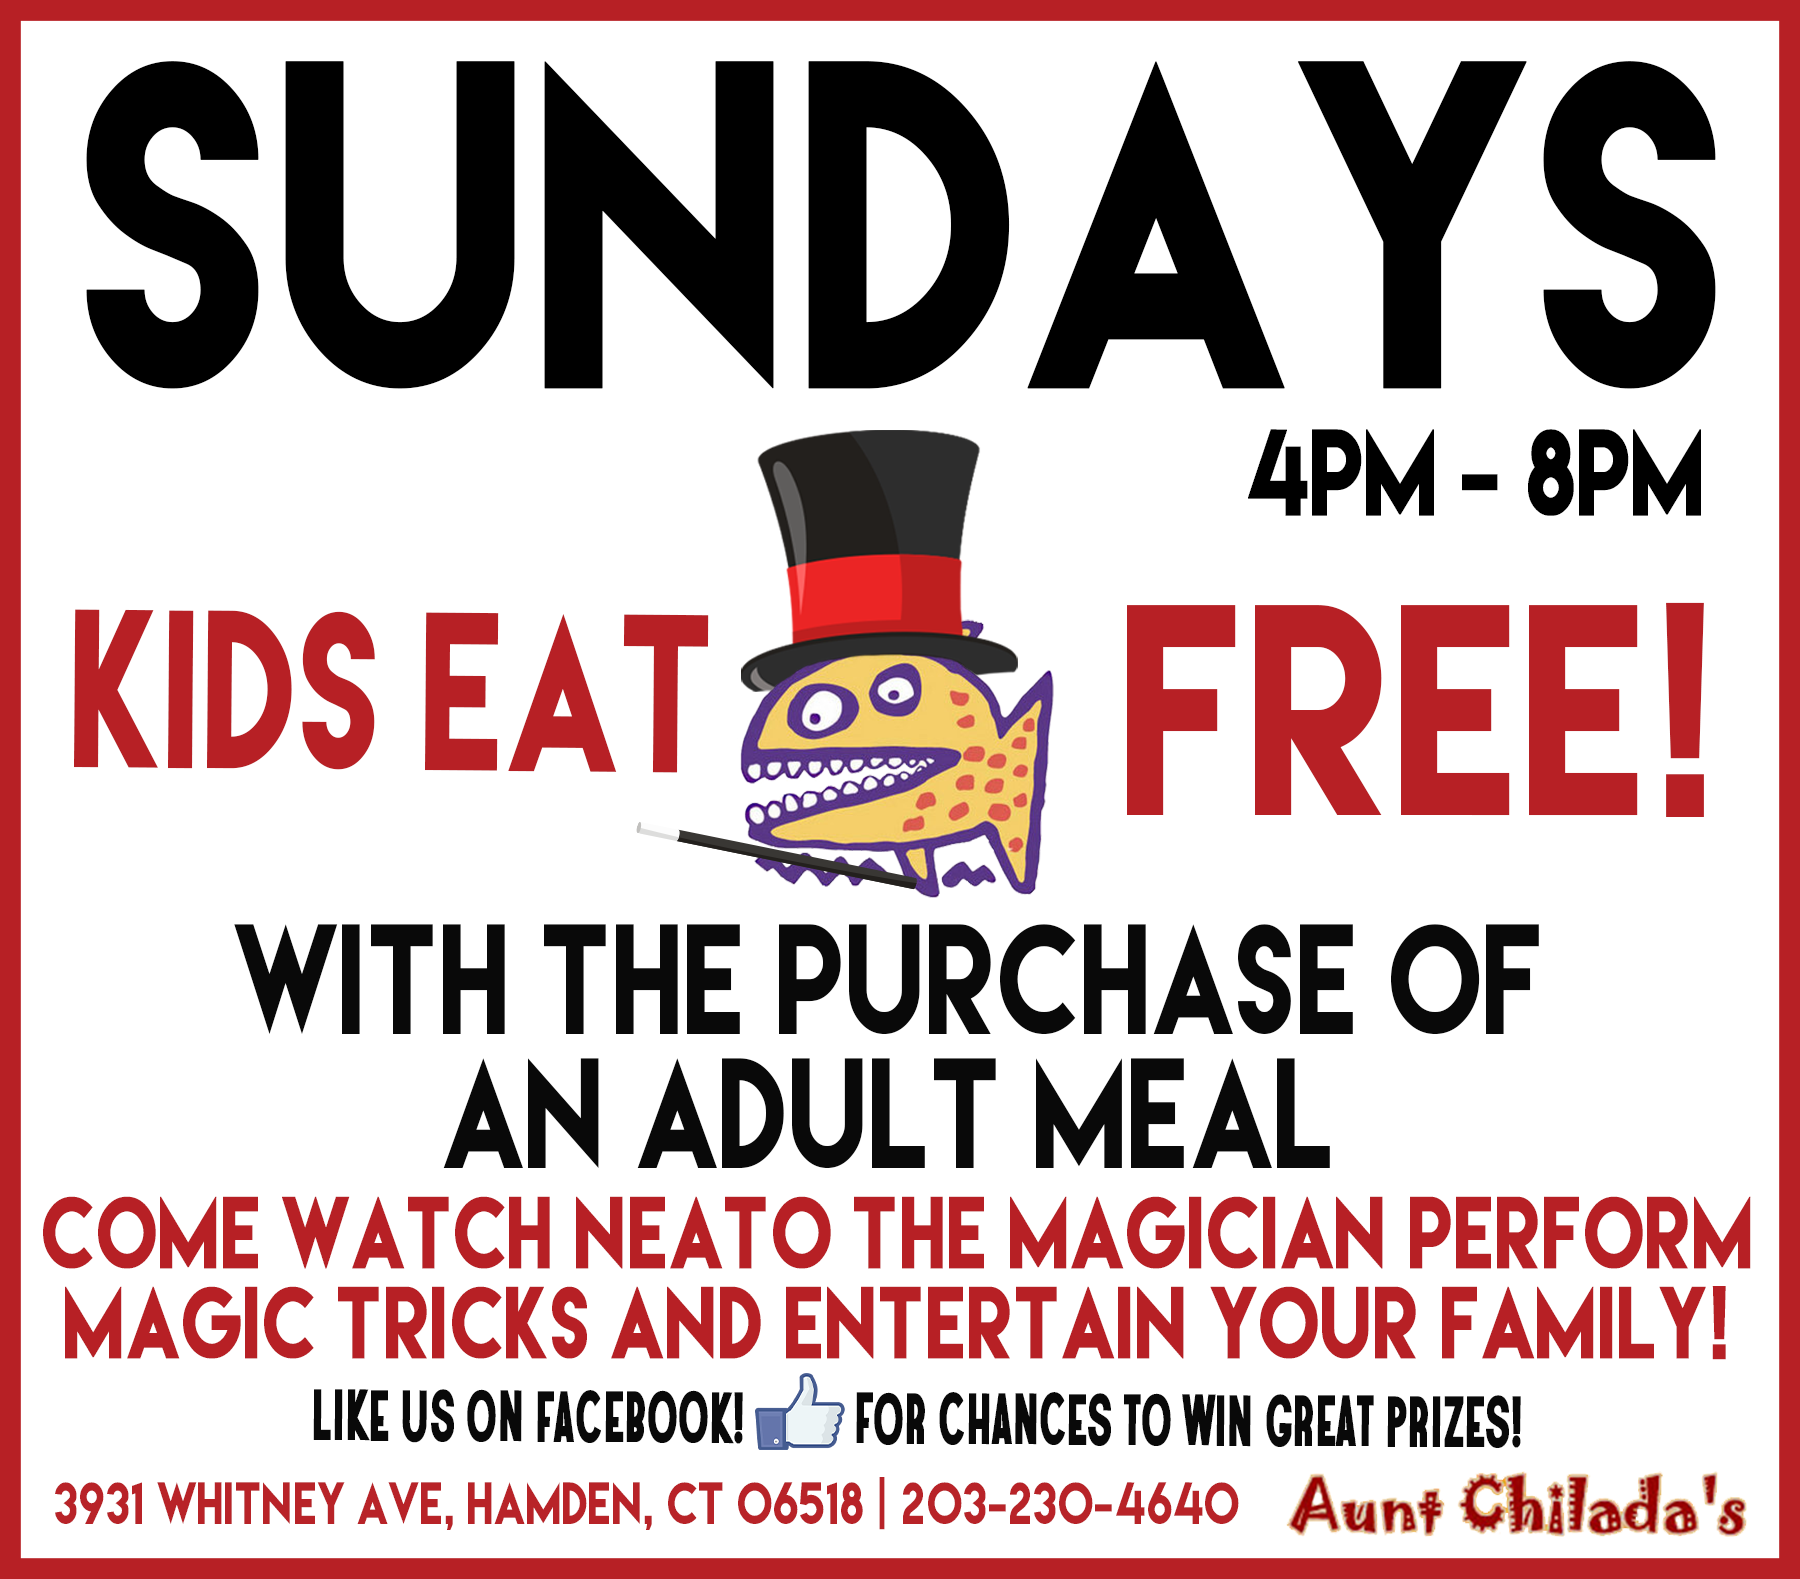 Sundays, 4 pm to 8 pm. Kids eat free with the purchase of an adult meal. Come watch Neato the Magician perform magic tricks and entertain your whole family! Like us on facebook for chances to win great prizes! 3931 Whitney Avenue, Hamden, Connecticut 06518. 203-230-4640. Aunt chilada's.